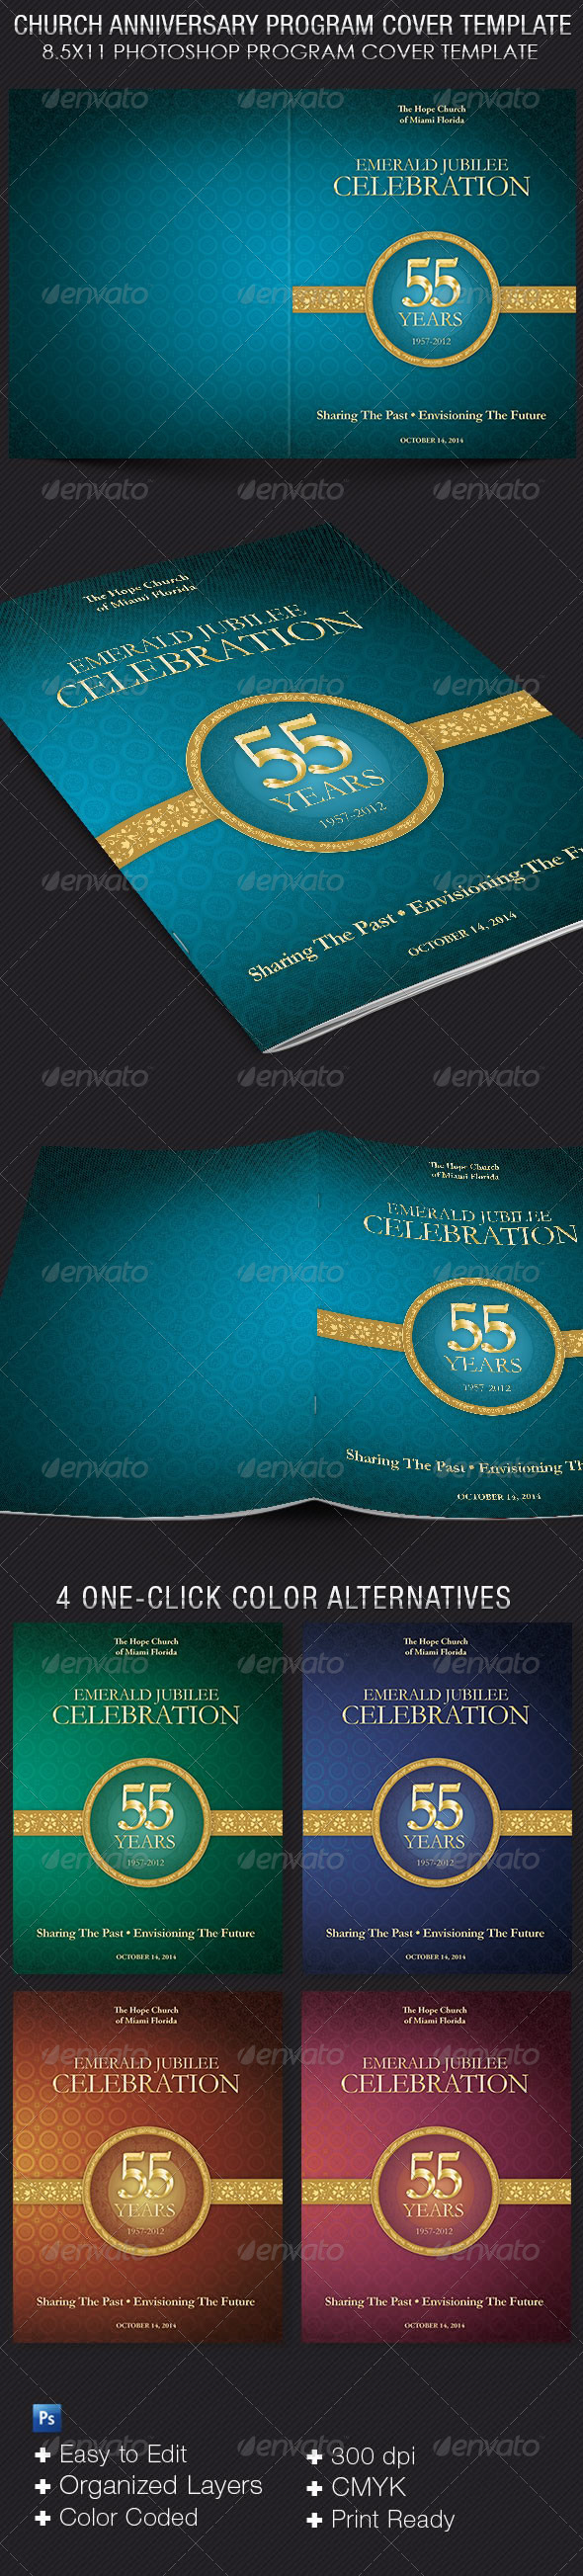 Church Anniversary Program Cover Template  - Informational Brochures